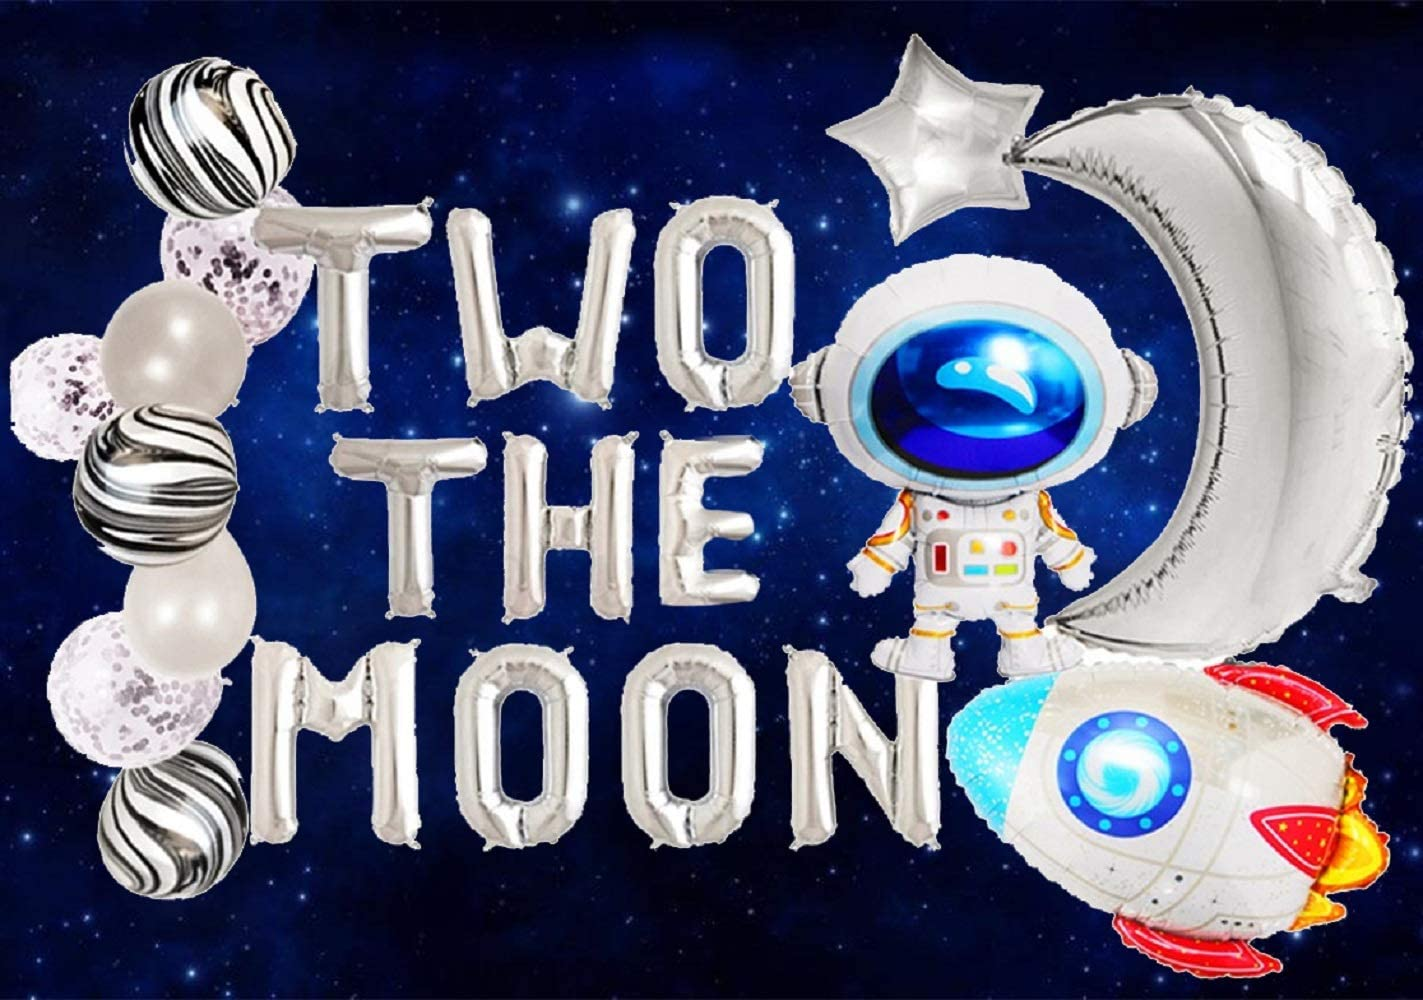 JeVenis Set of 20 Two the Moon Balloons 2 the Moon Space Birthday Decoration Space Balloons Galaxy Balloons Astronaut Balloons for Outer Space Theme Decor To the Moon Decoration